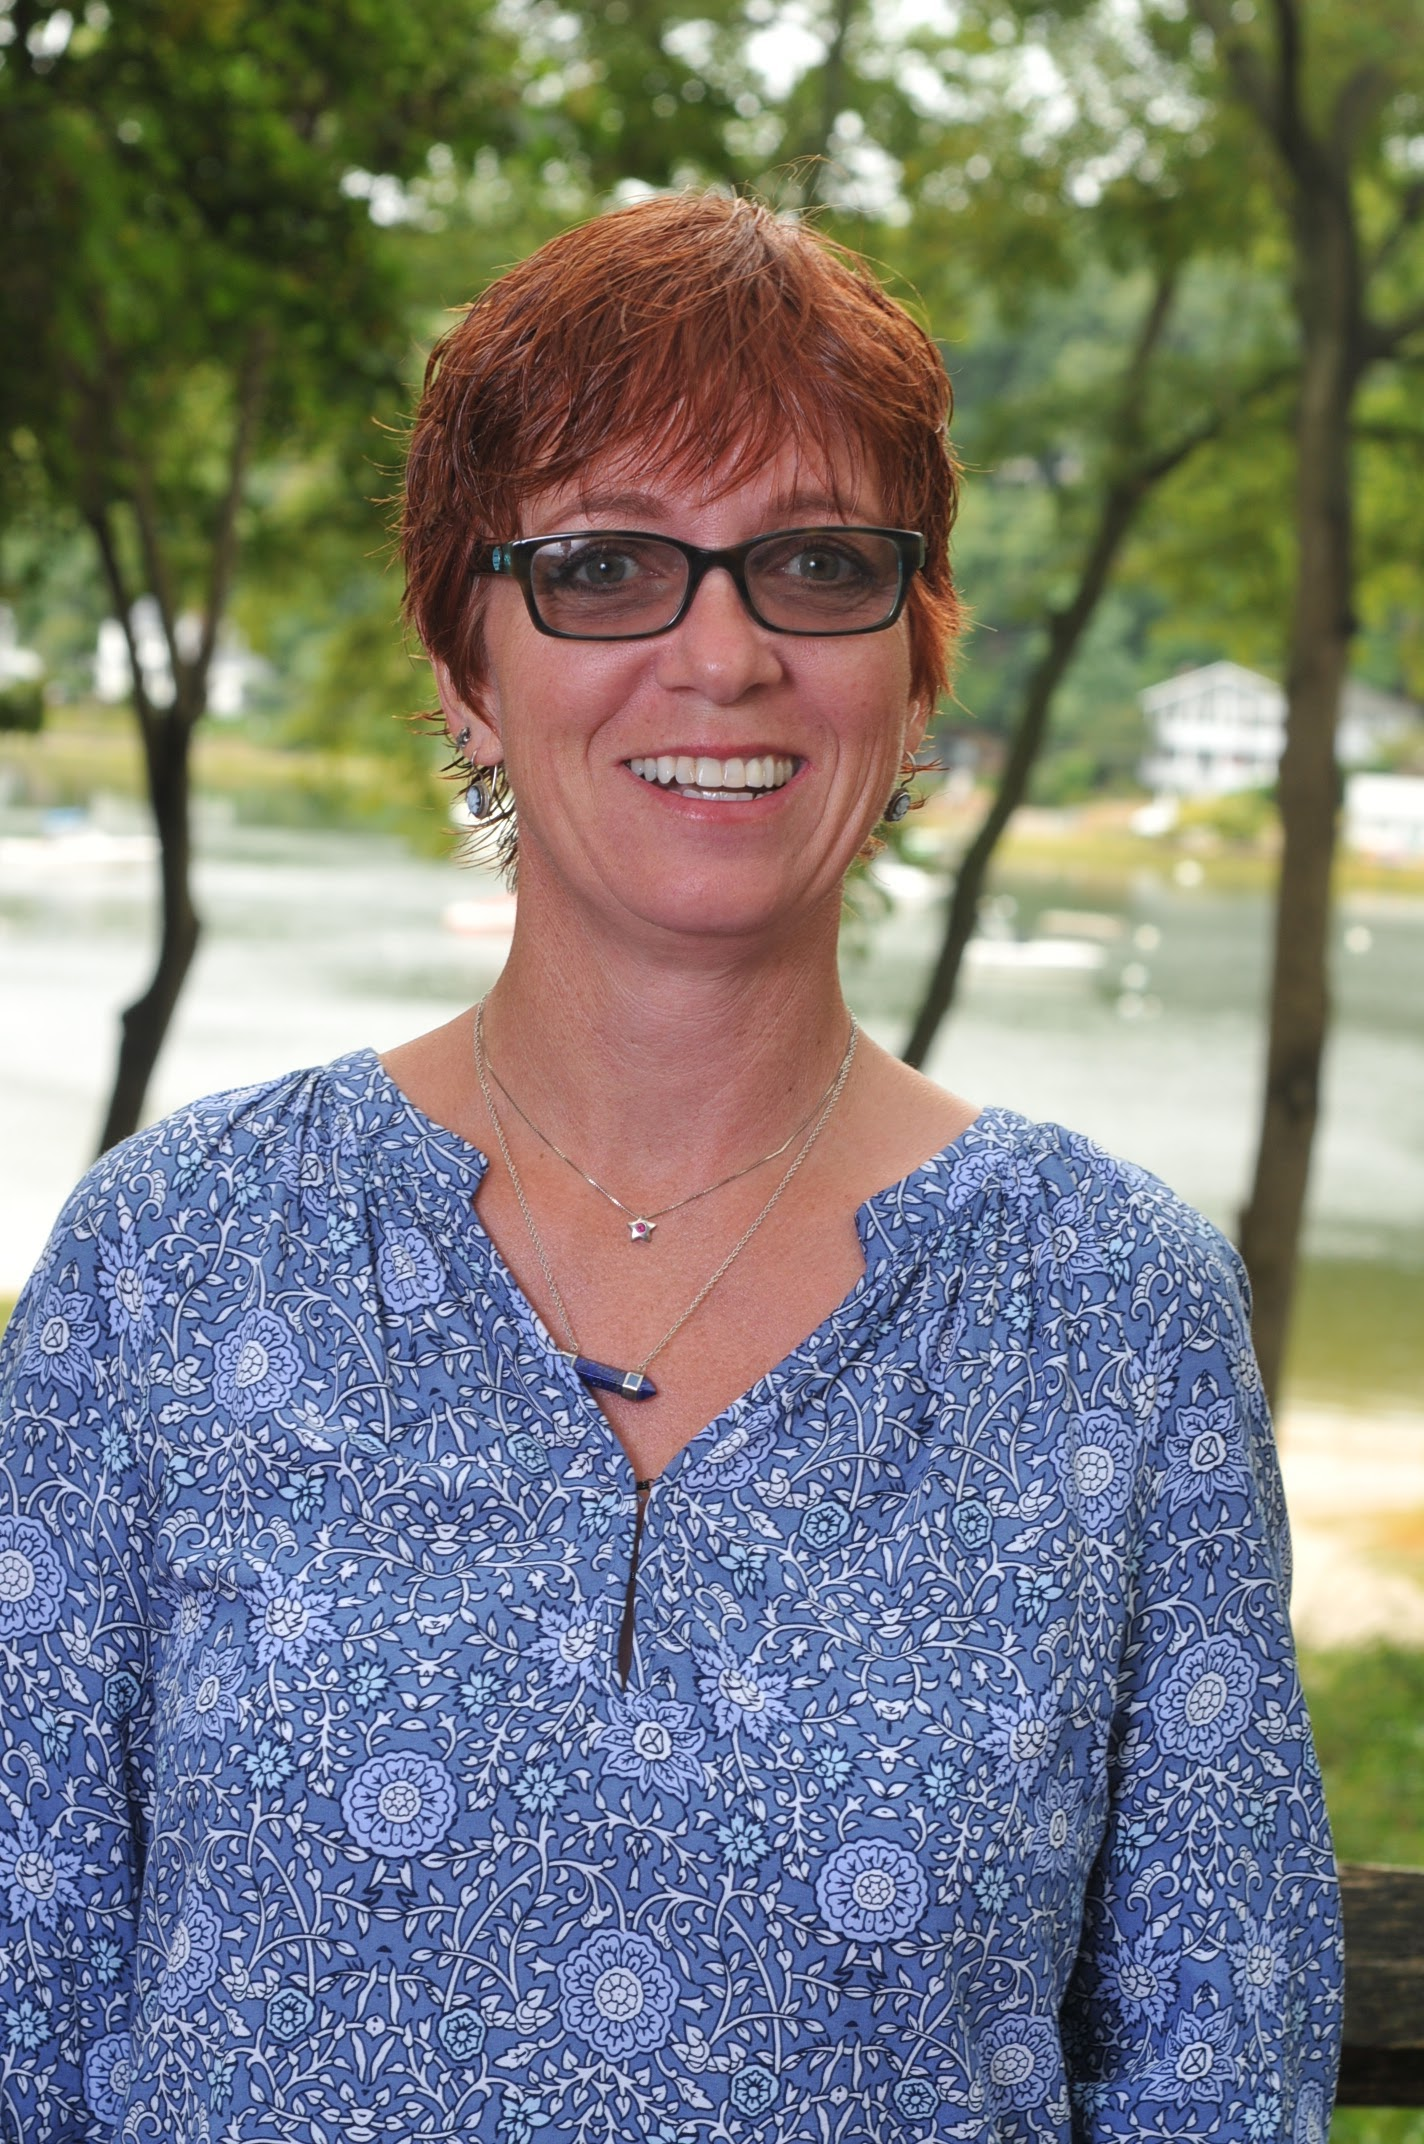 Toni DiNunzio, Assistant Teacher    years at lol:  14 years   experience:  24 years experience working with children, 21 years in the classroom